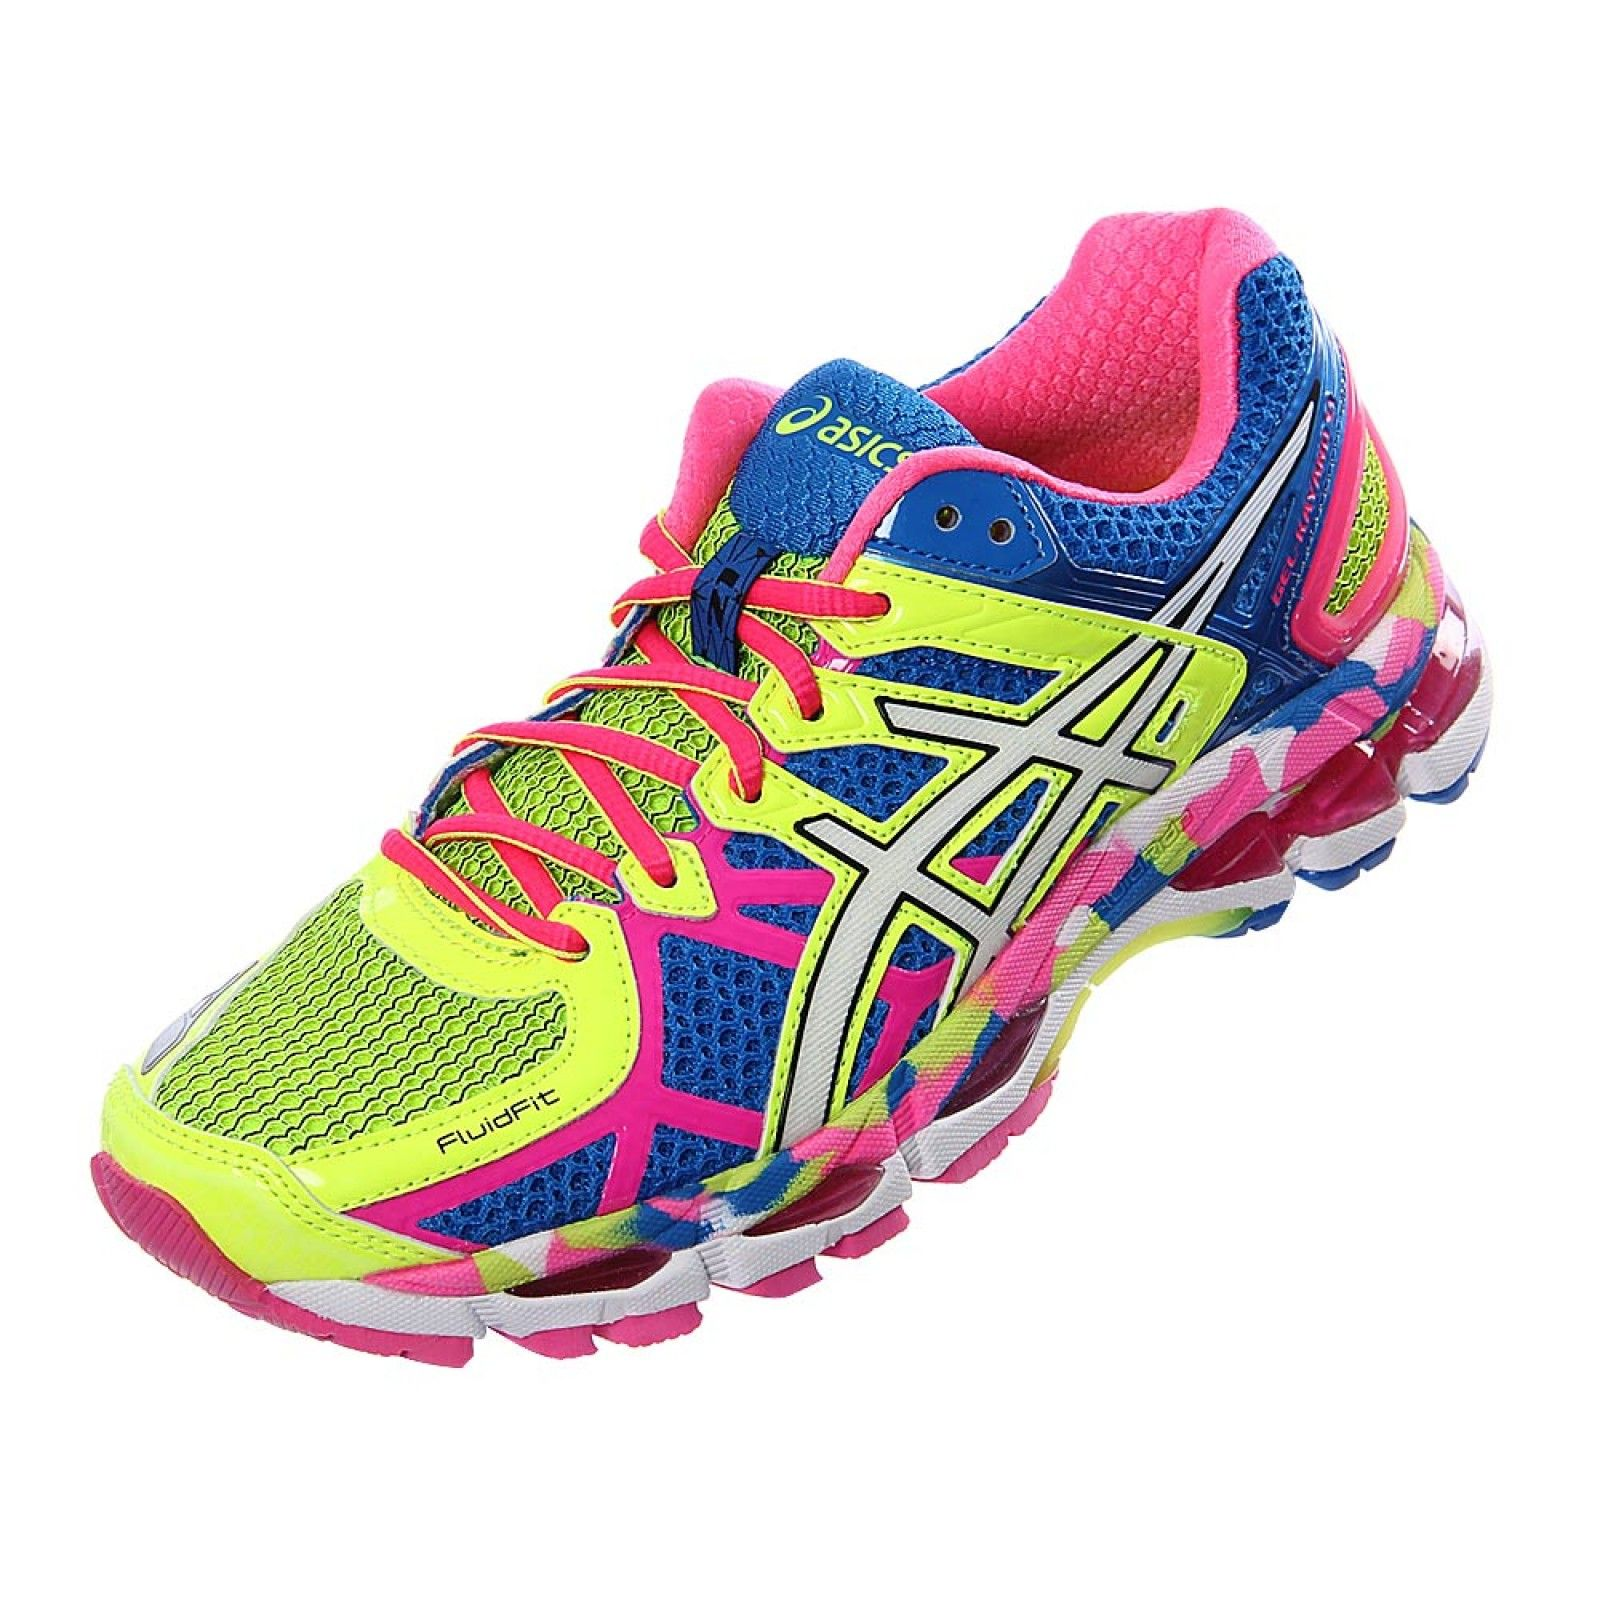 womens asics running shoes size 10